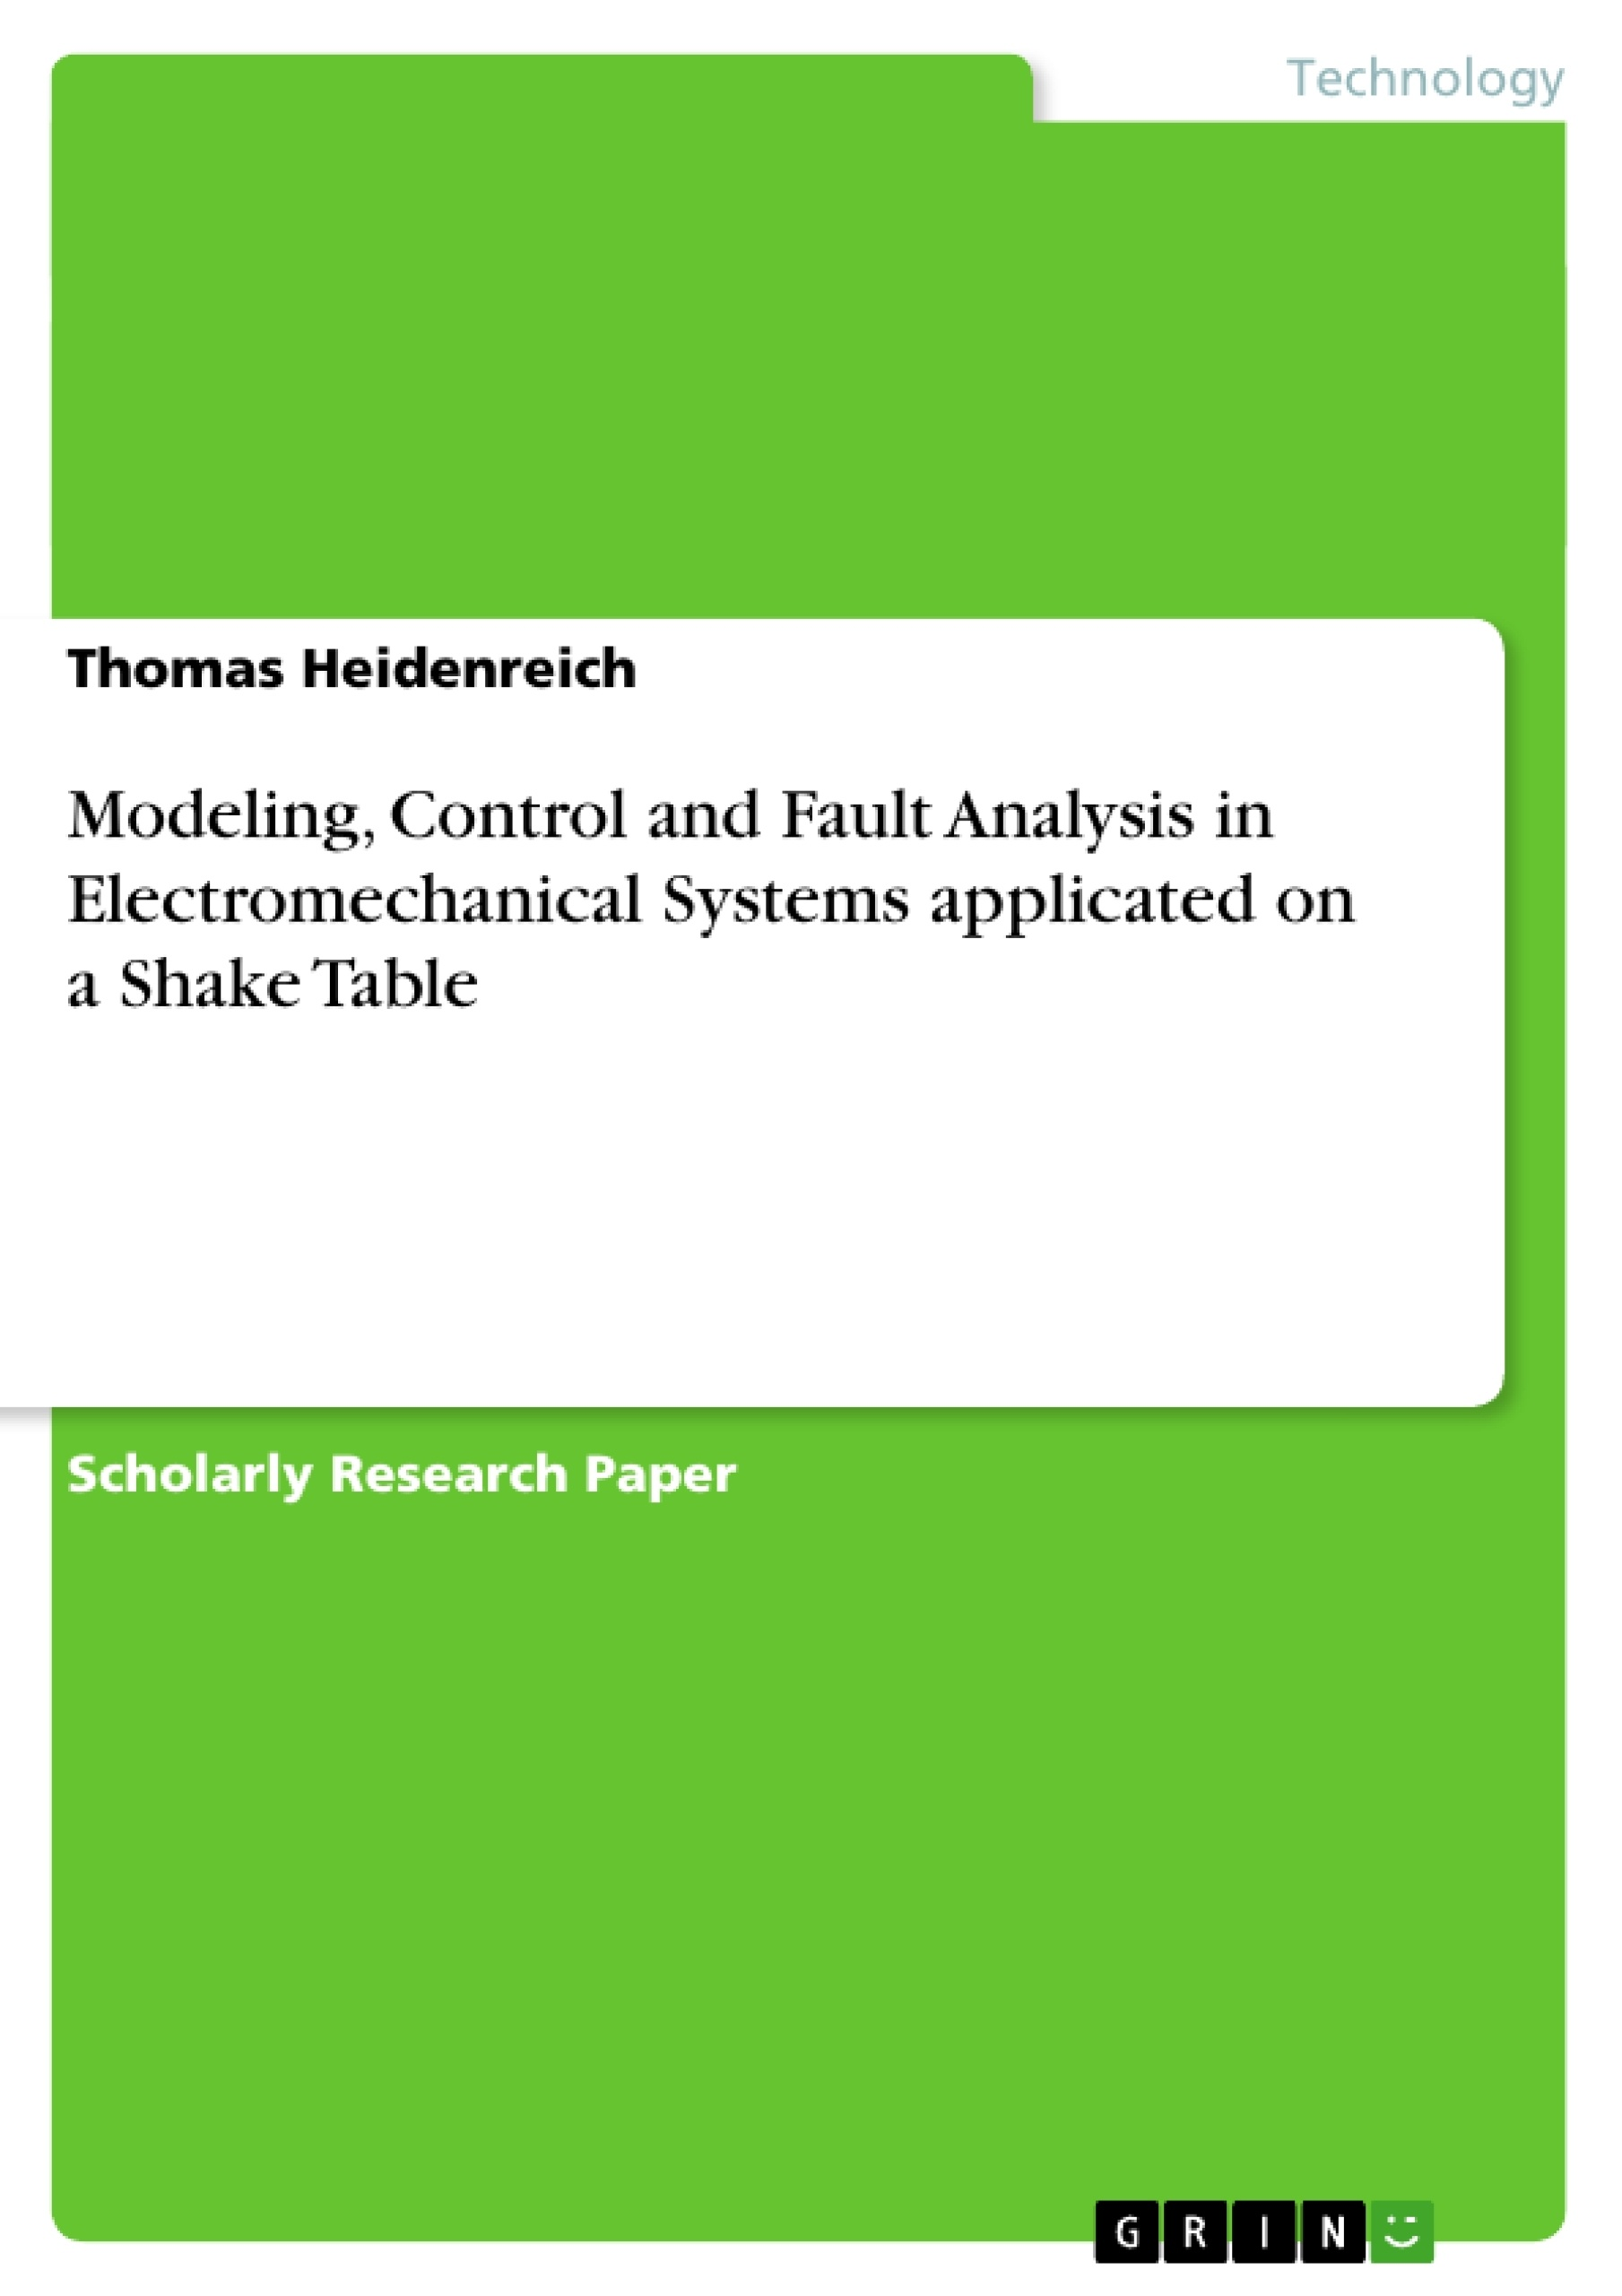 Title: Modeling, Control and Fault Analysis in Electromechanical Systems applicated on a Shake Table